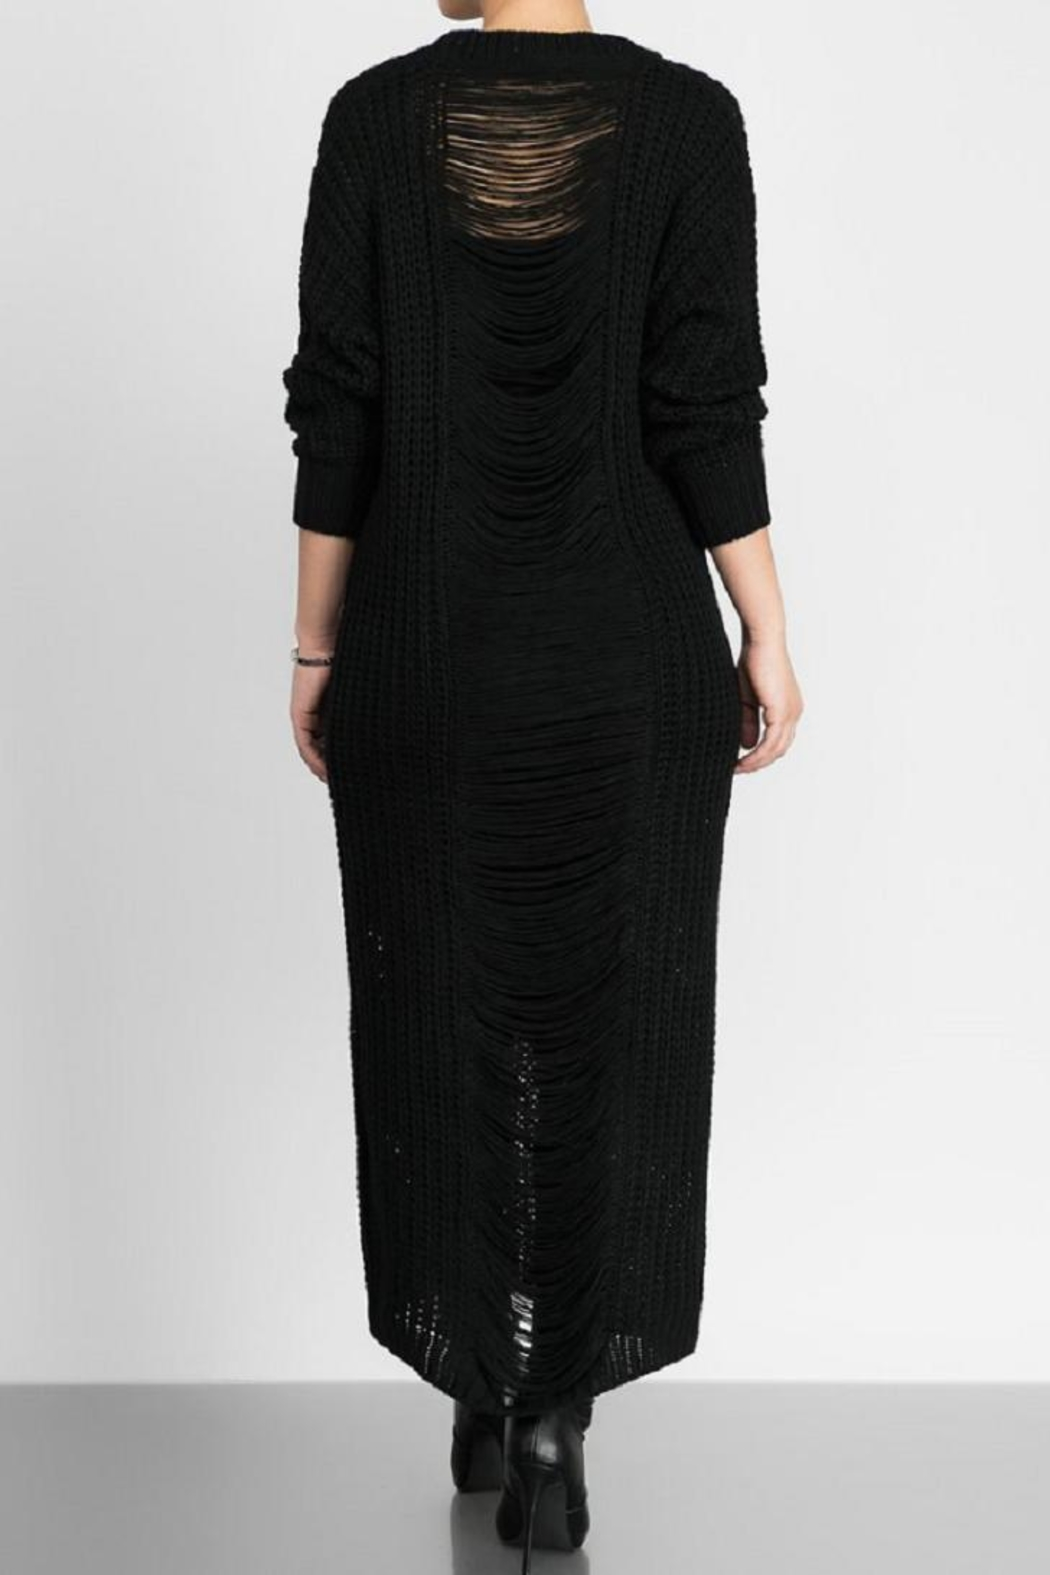 hera collection Distressed Maxi Sweater - Front Cropped Image